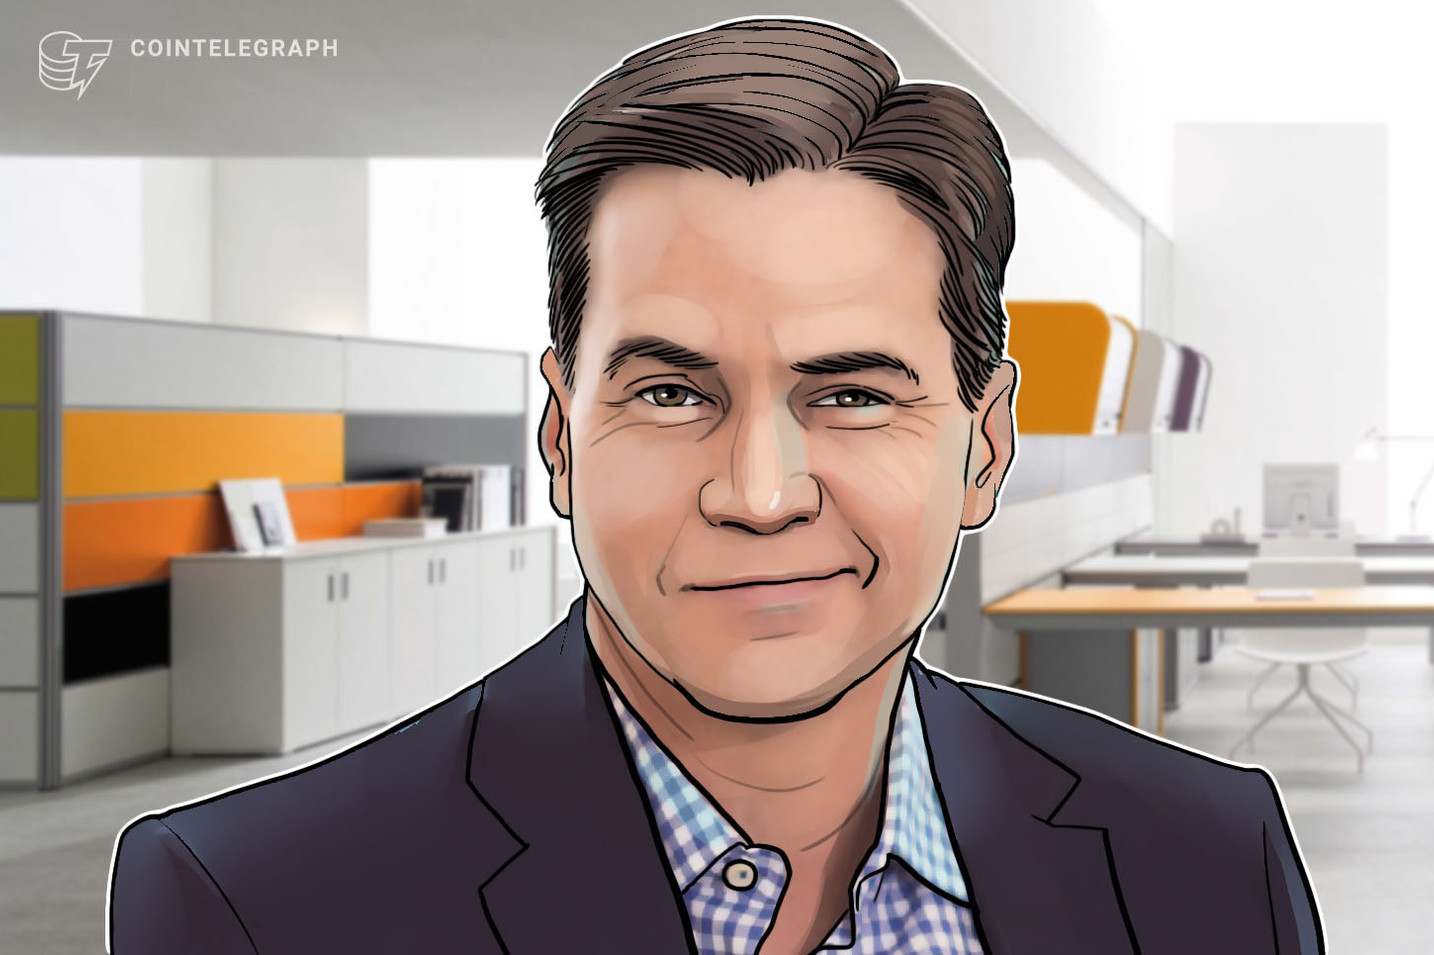 The Law Is Coming for Bitcoin, Warns Satoshi Claimant Craig Wright